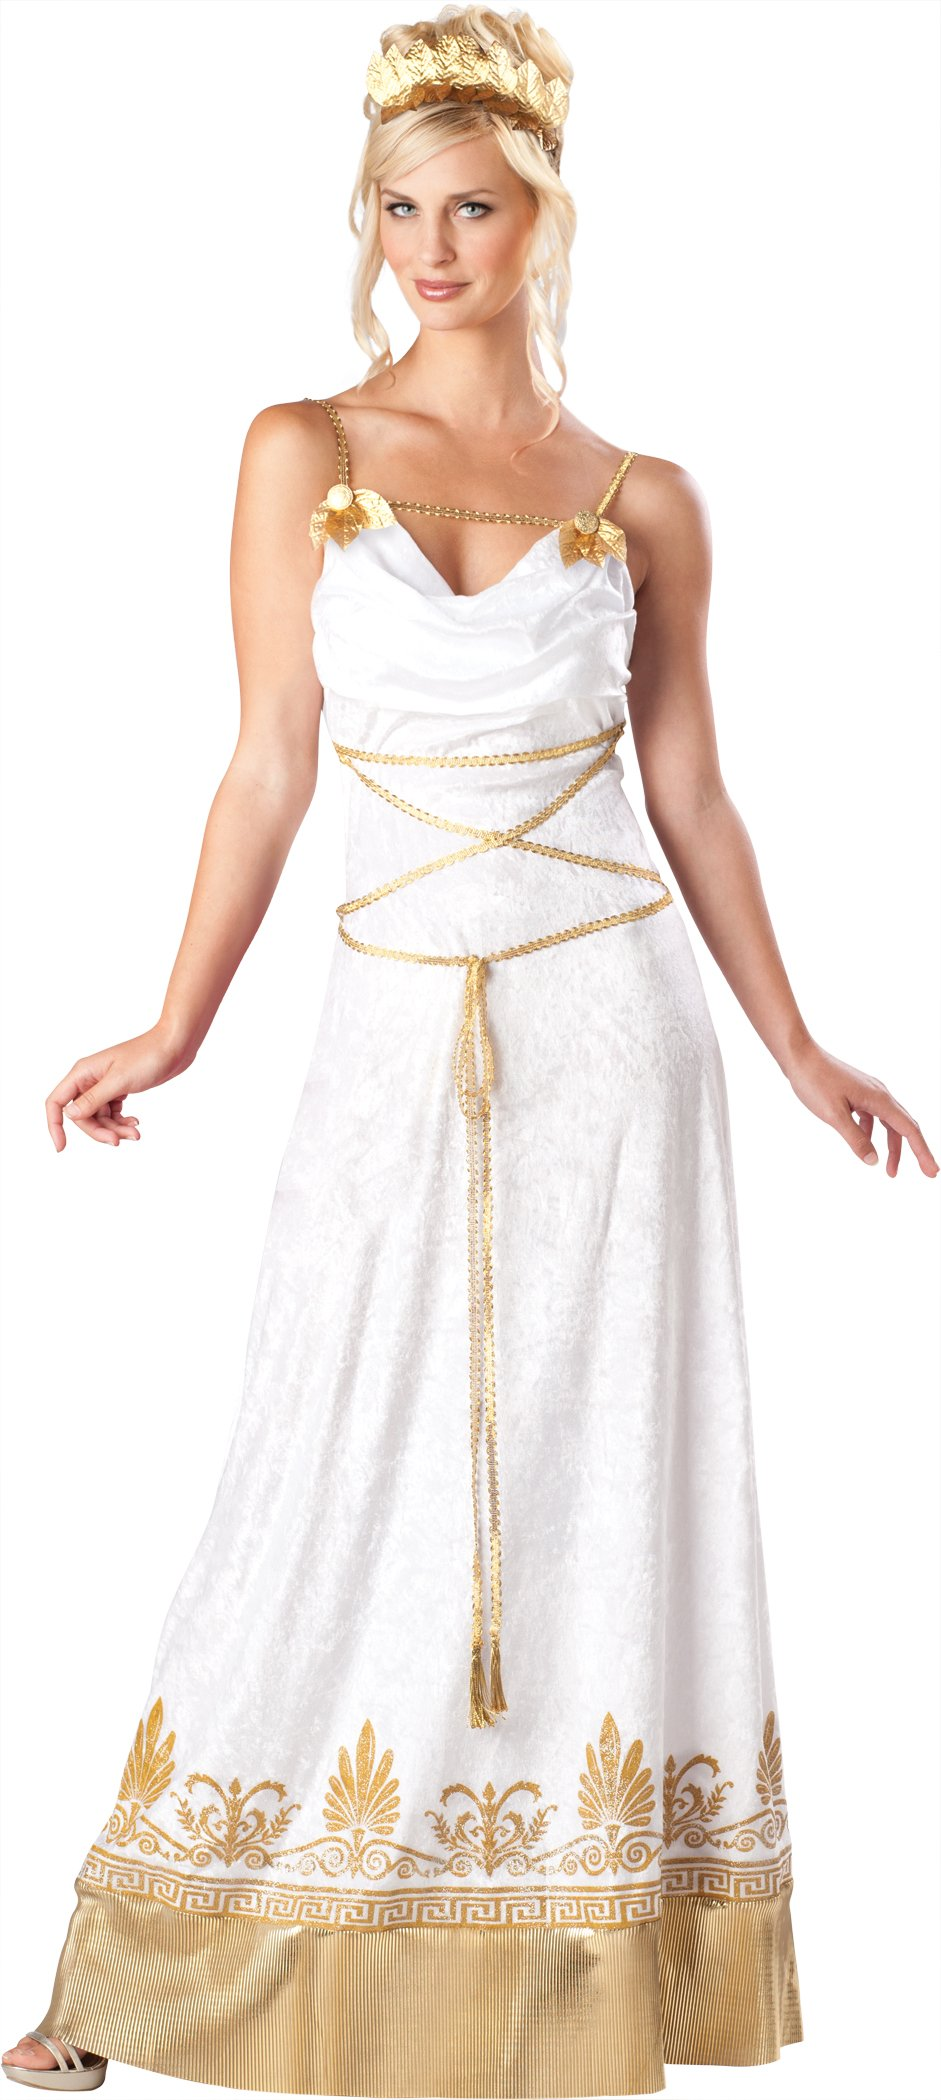 New Sexy Hera Aphrodite Greek Roman Goddess Costume | eBay